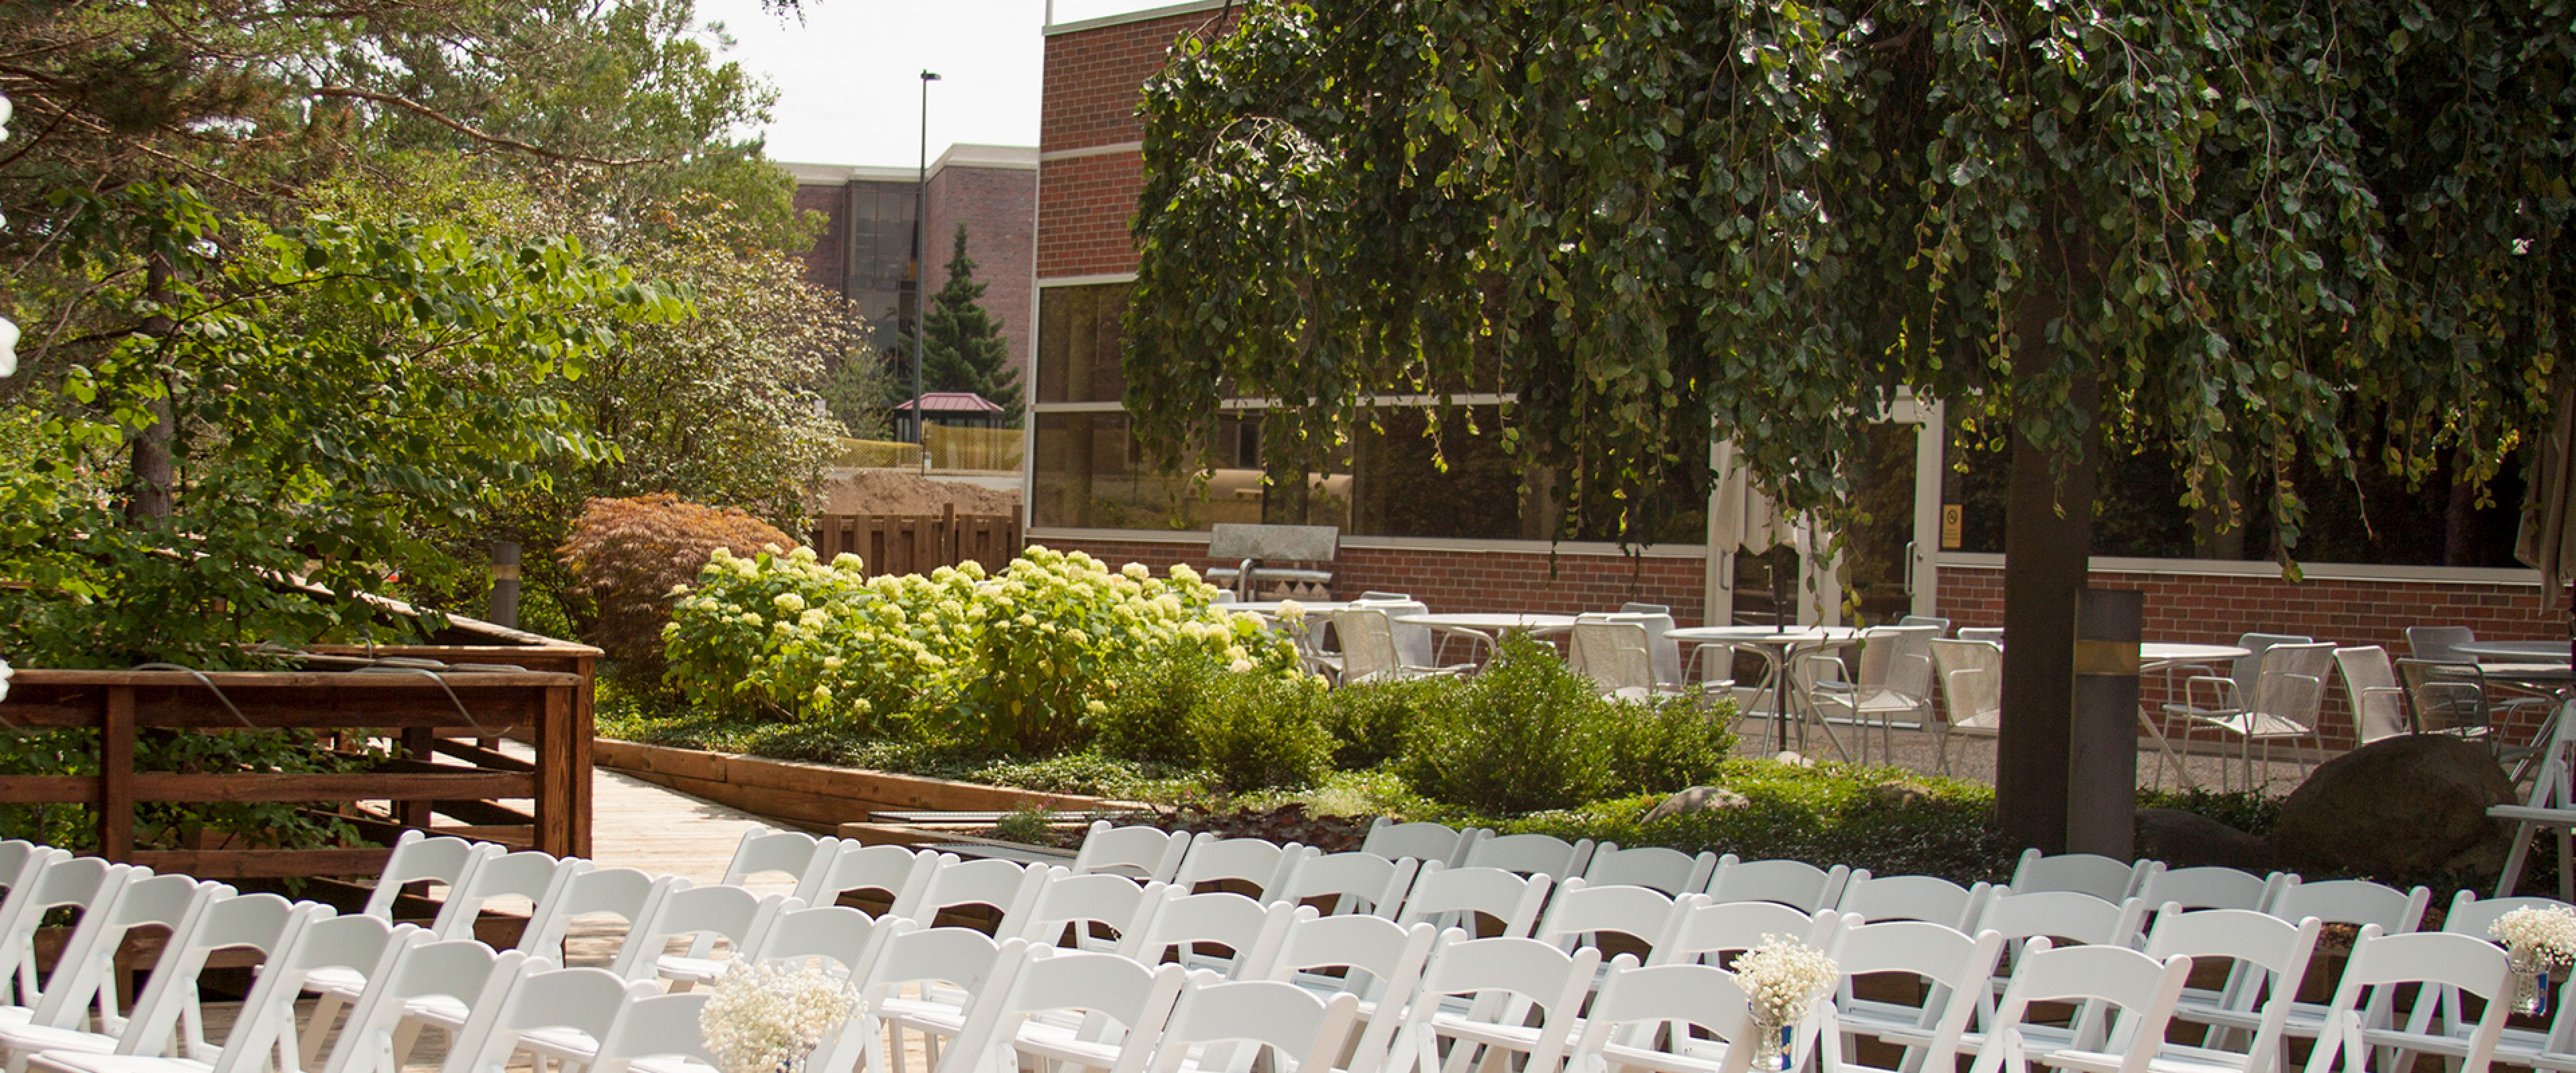 Fetzer patio set up for an audience